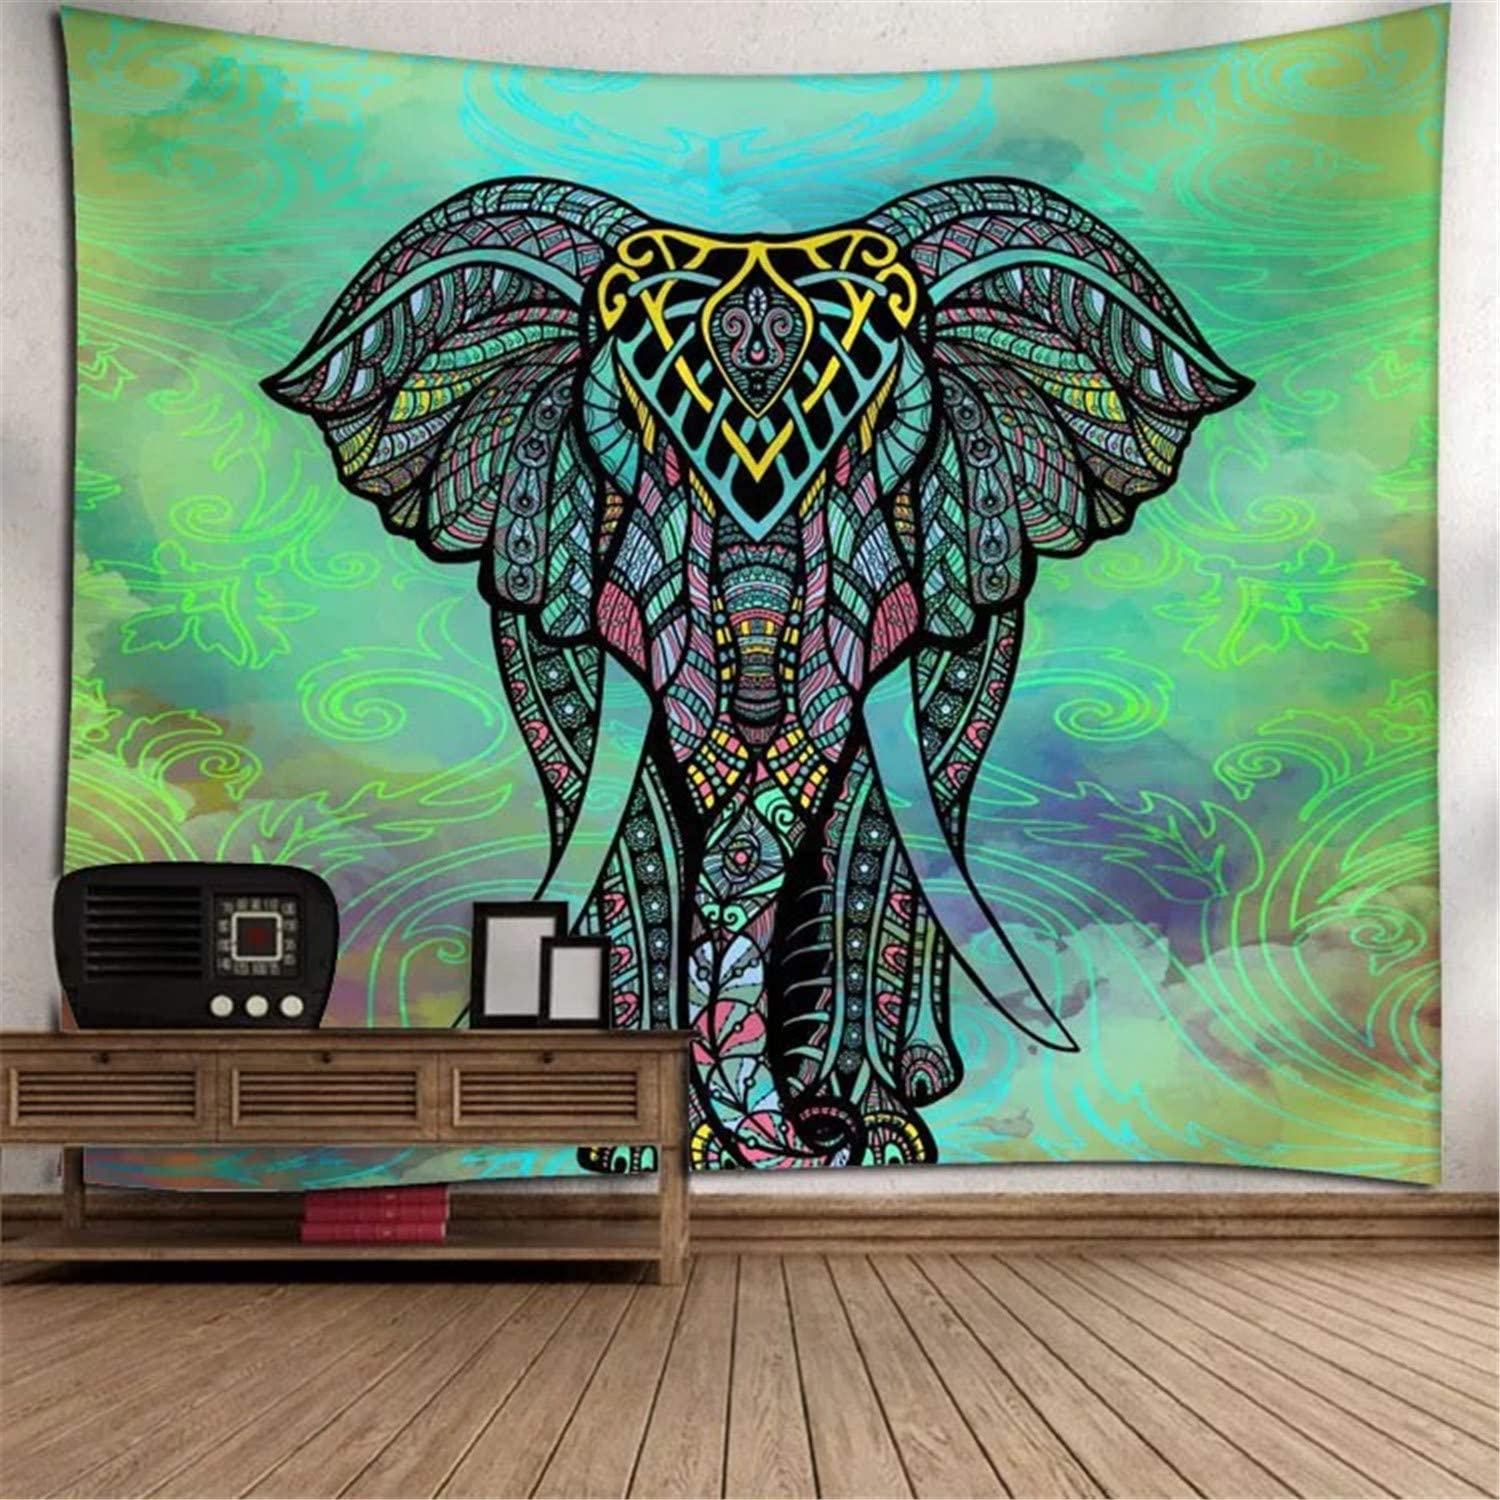 Dream Catcher Tobeffect Aesthetic Tapestry Psychedelic Wall Hanging for Bedroom Home Room Decor 51.2 x 59.1 inches